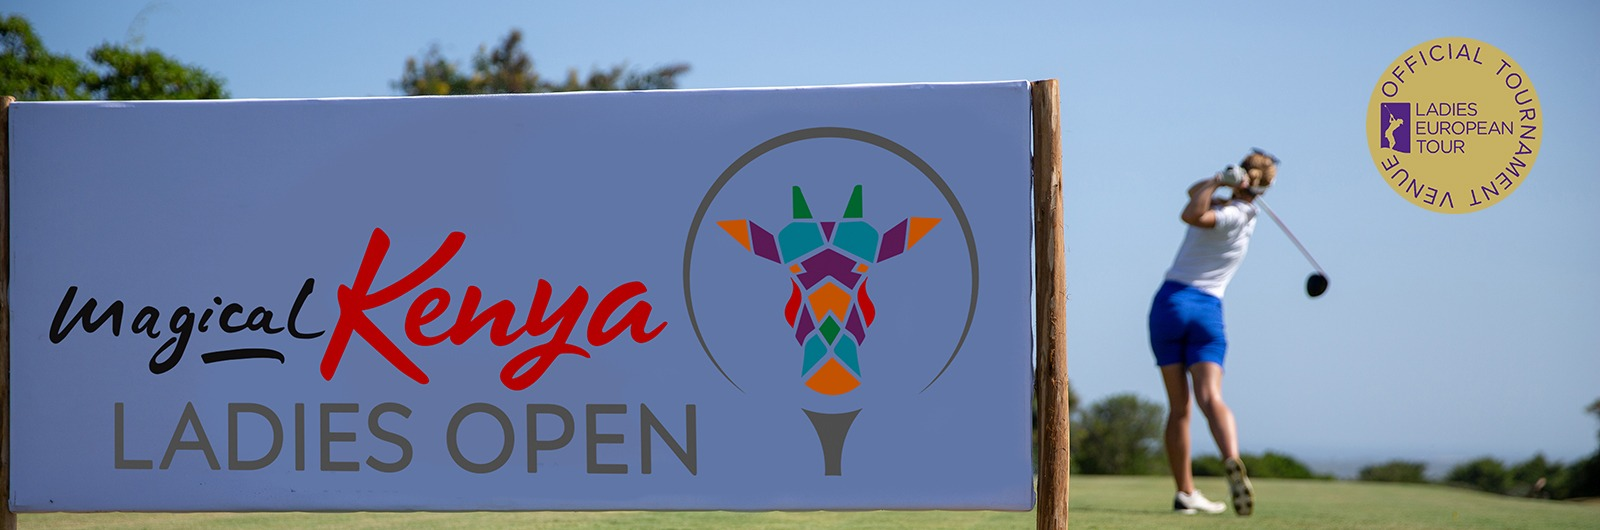 Vipingo Ridge Ladies European Tour